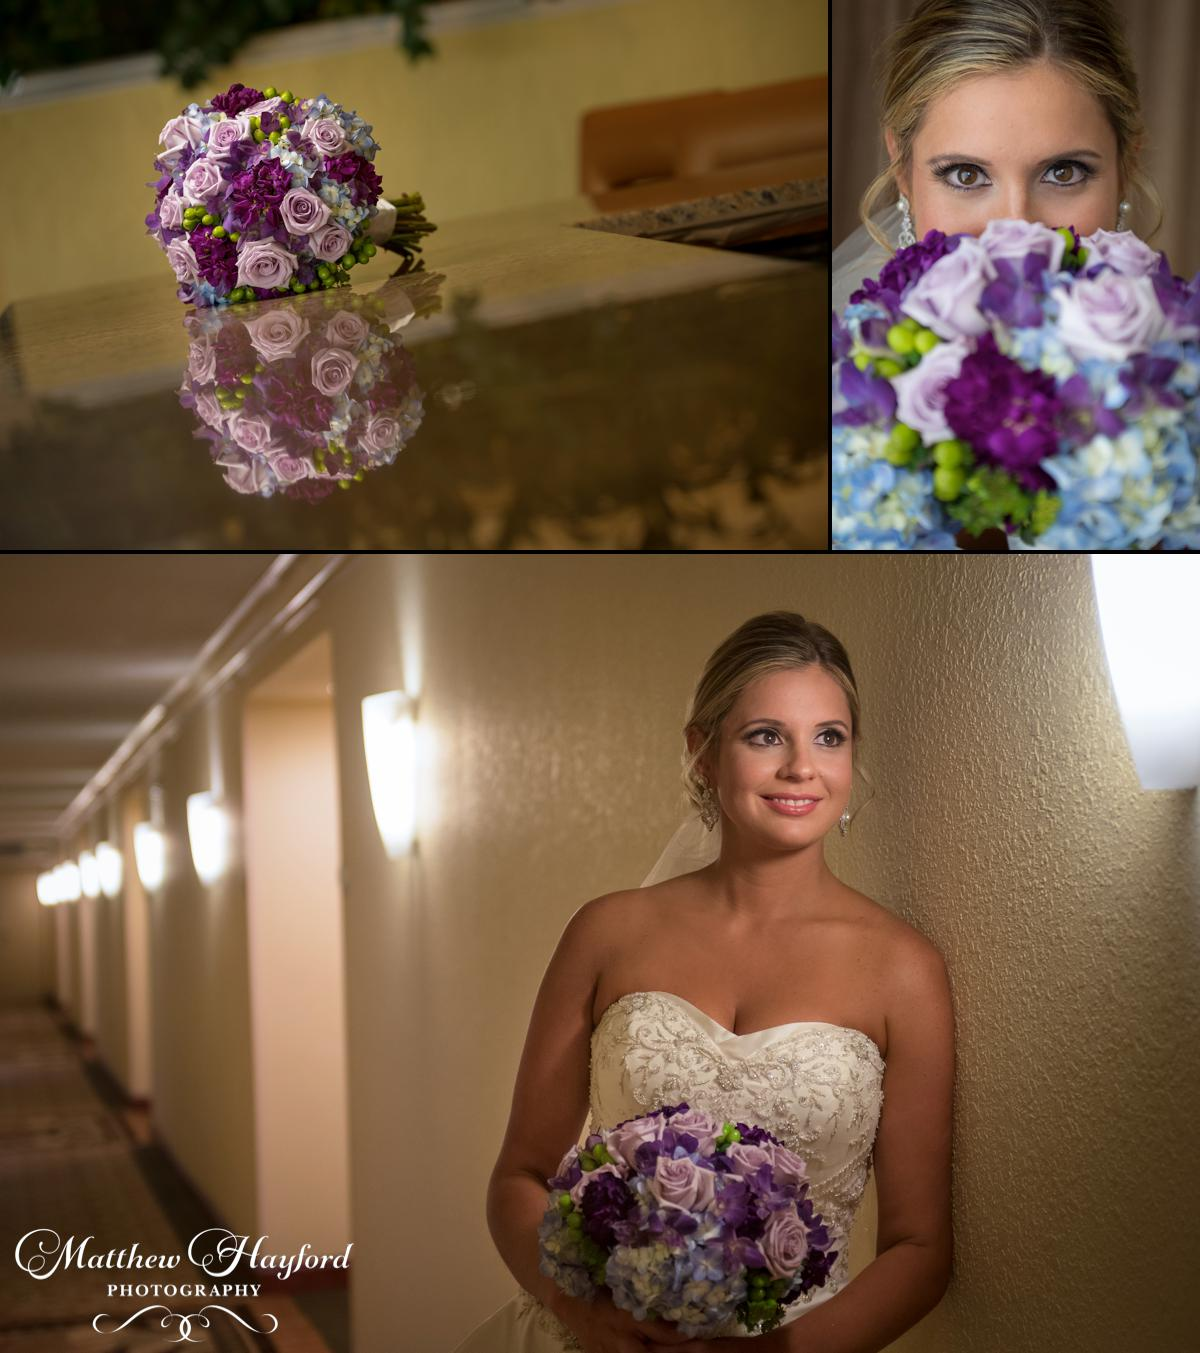 Bridal Portraits at the Hilton by Matthew Hayford Photography